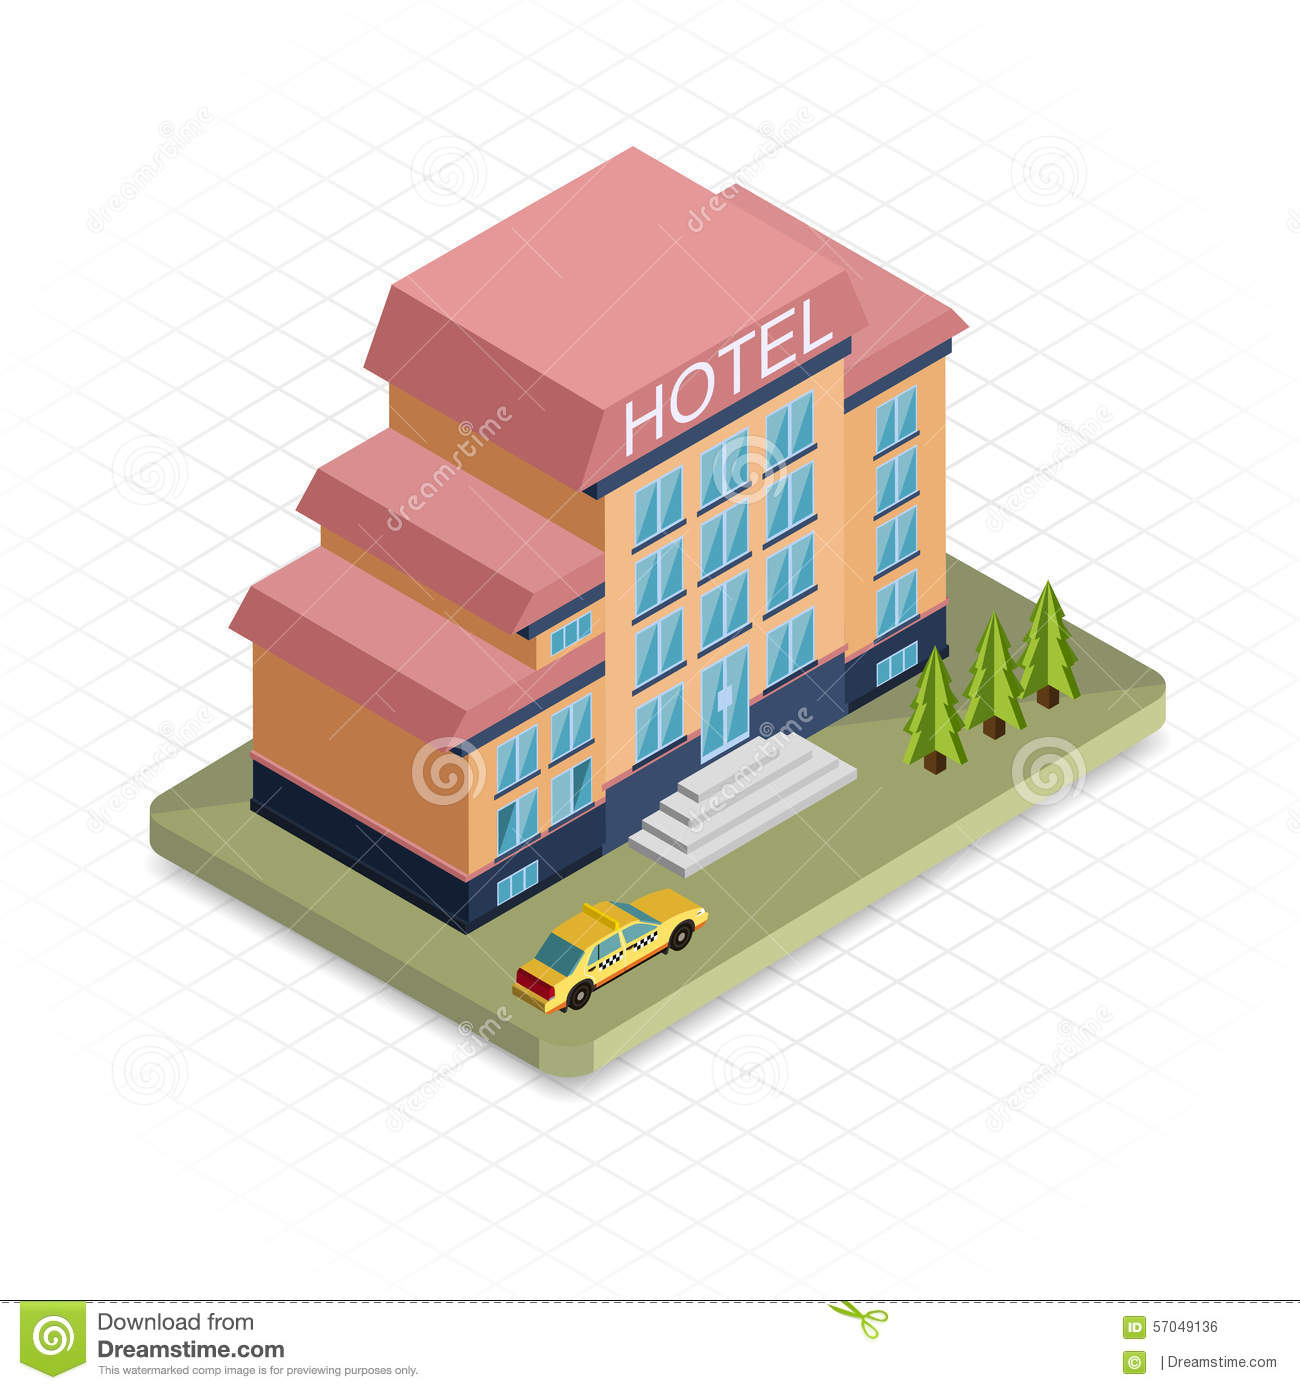 Hotel building isometric 3d pixel design icon stock for 3d flat design online